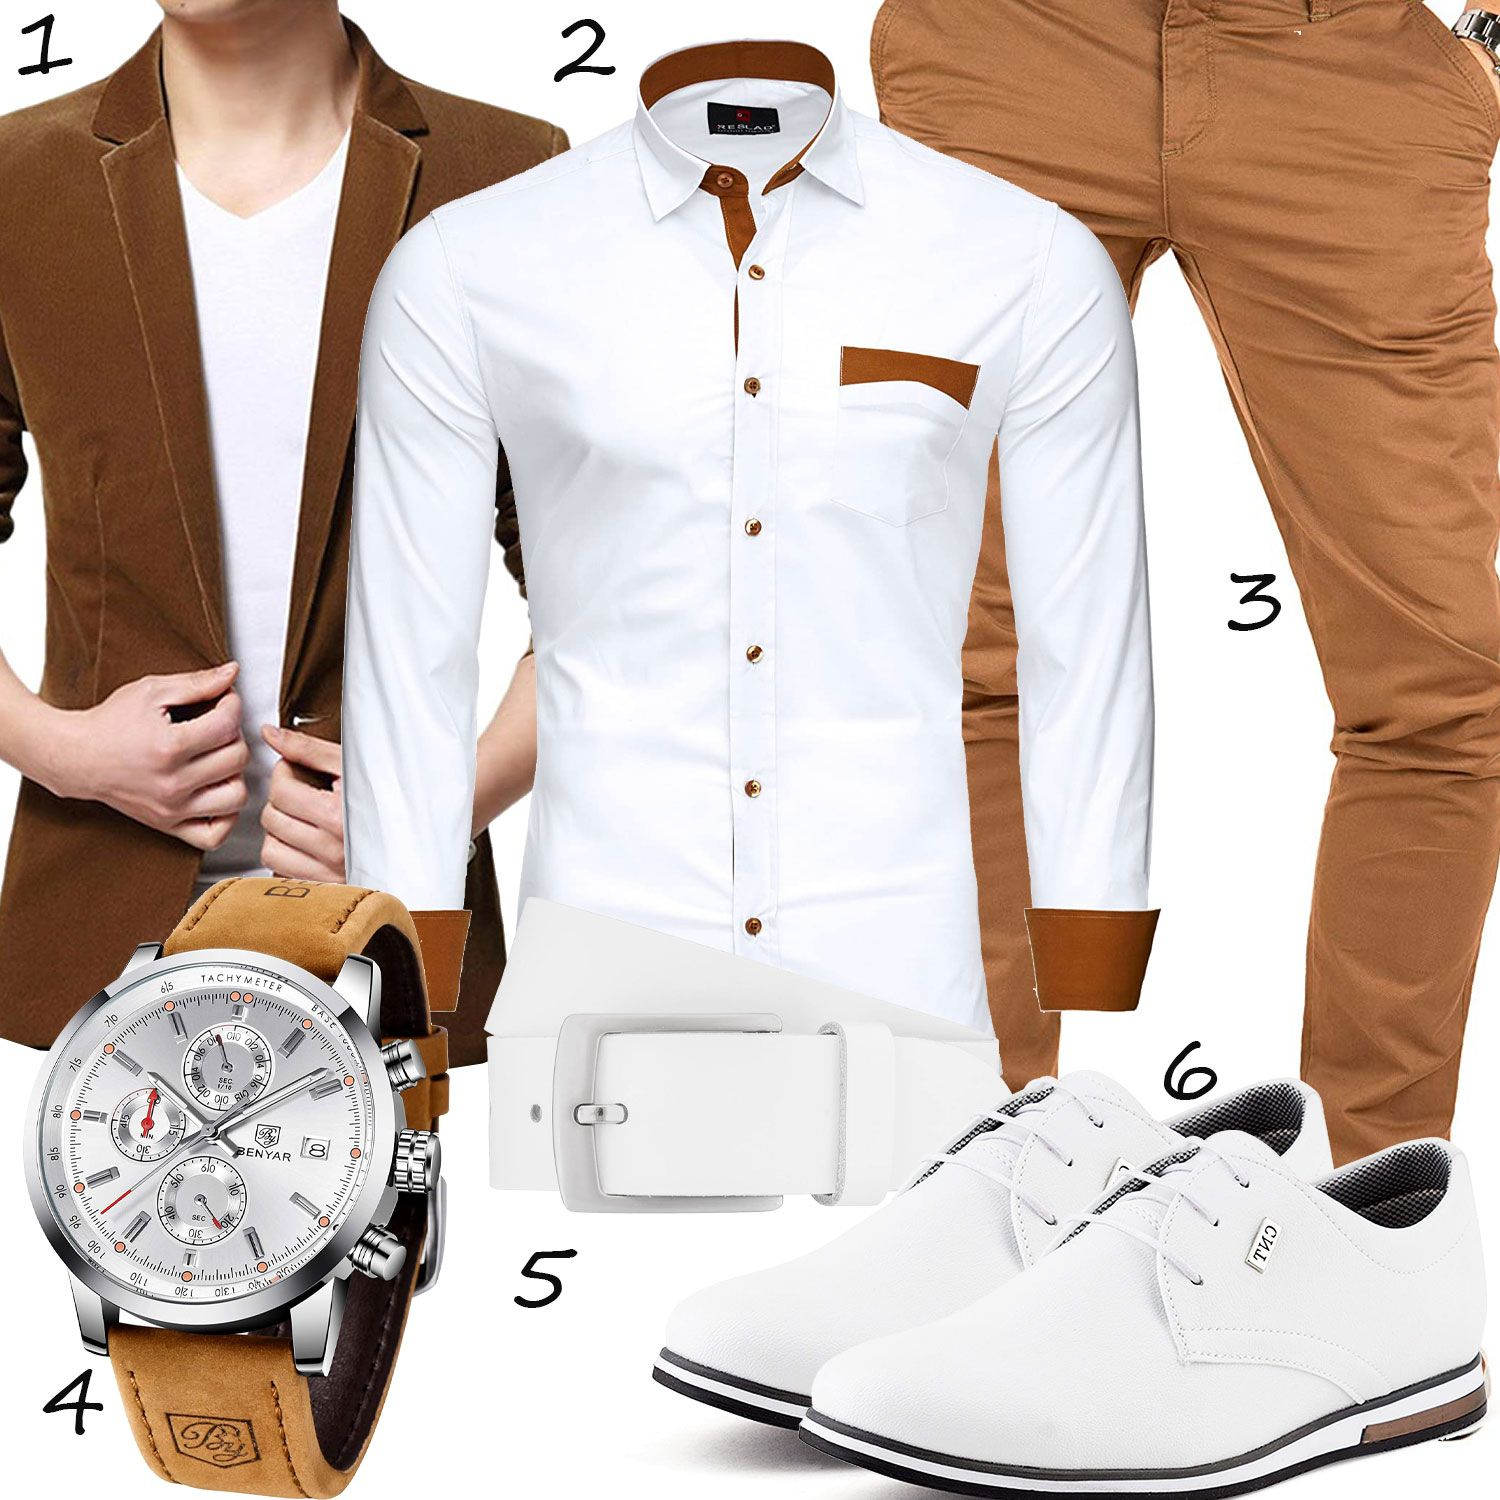 eleganter herren-style in weiß und hellbraun - outfits4you